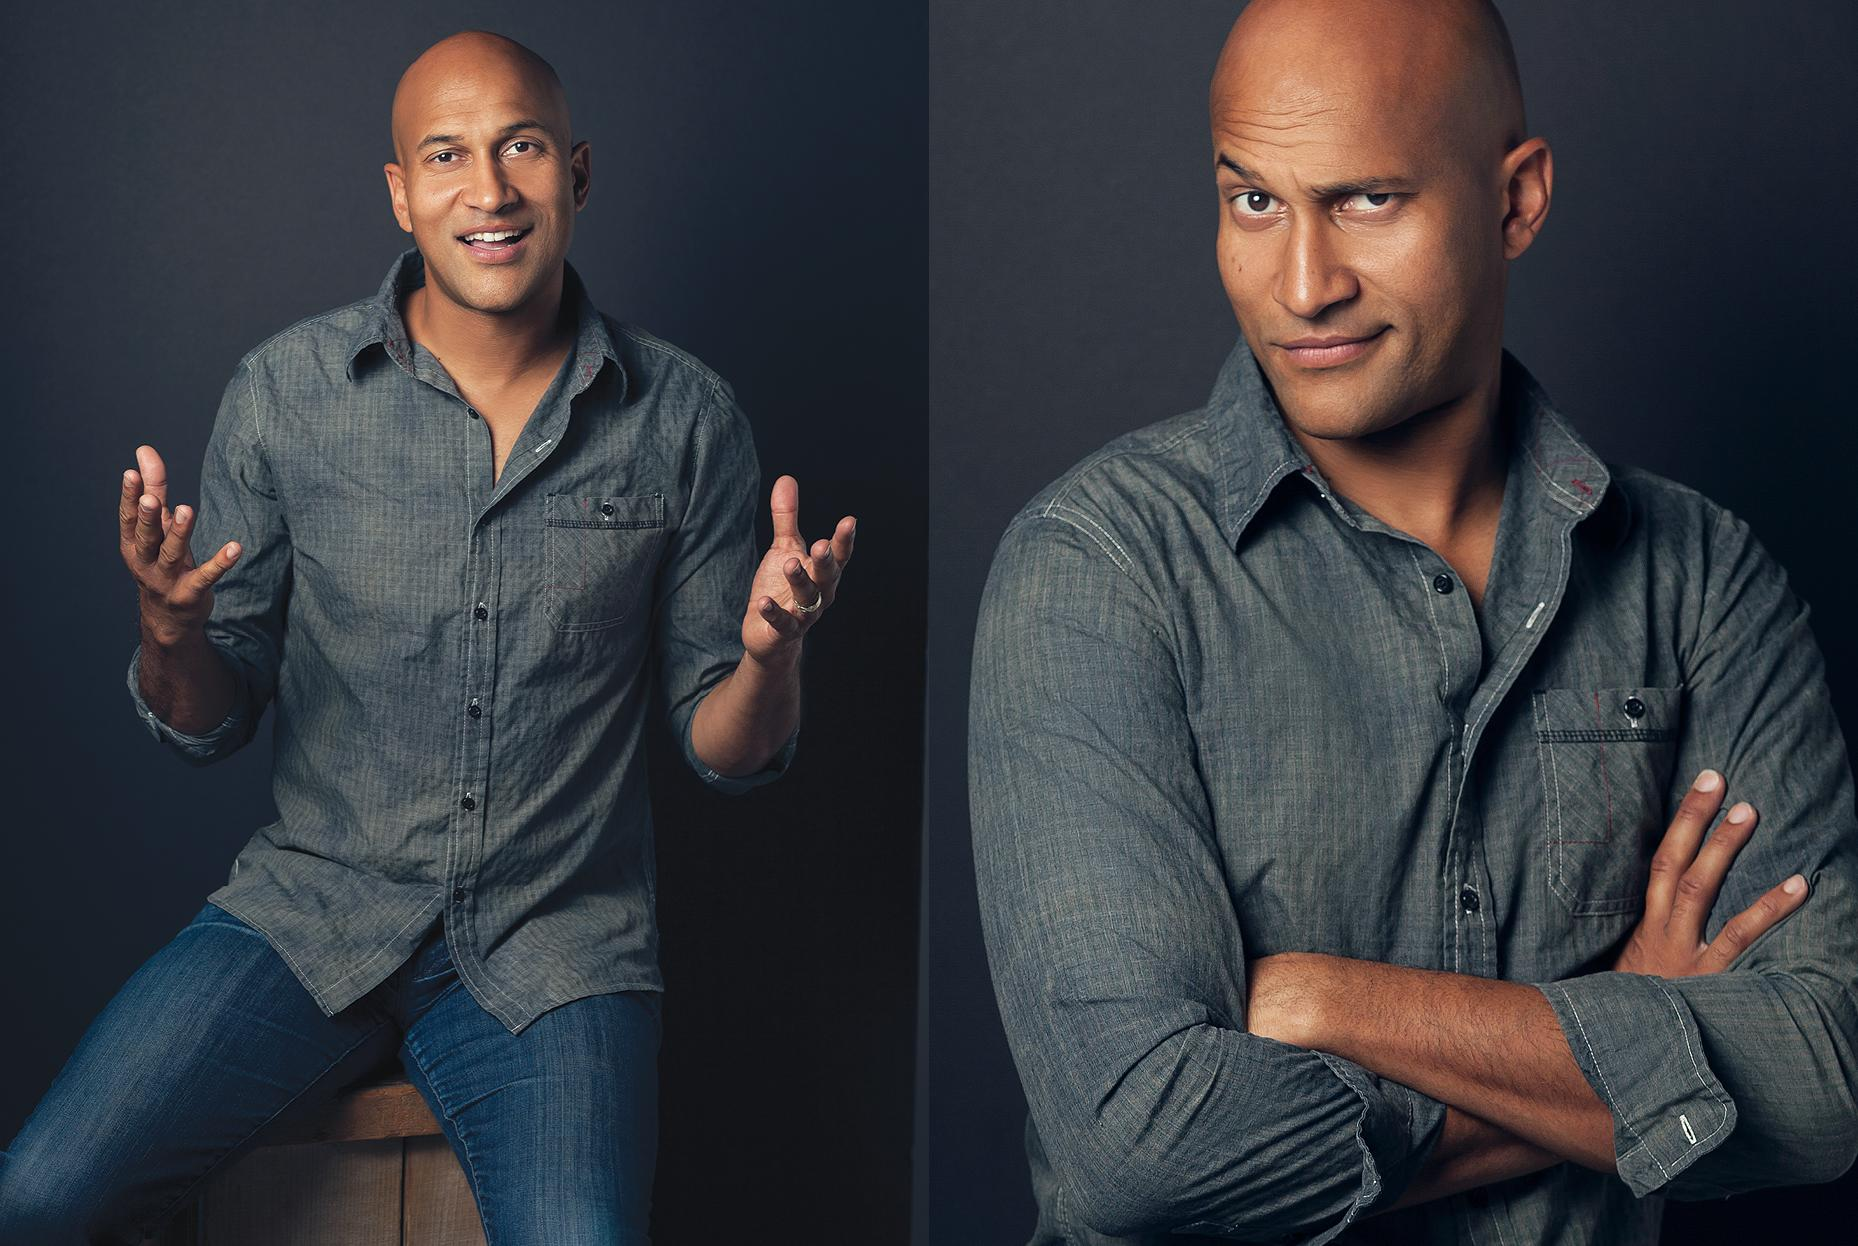 Keegan-Michael Key On Ending 'Key & Peele' And Being Obama's Anger Translator – Emmys